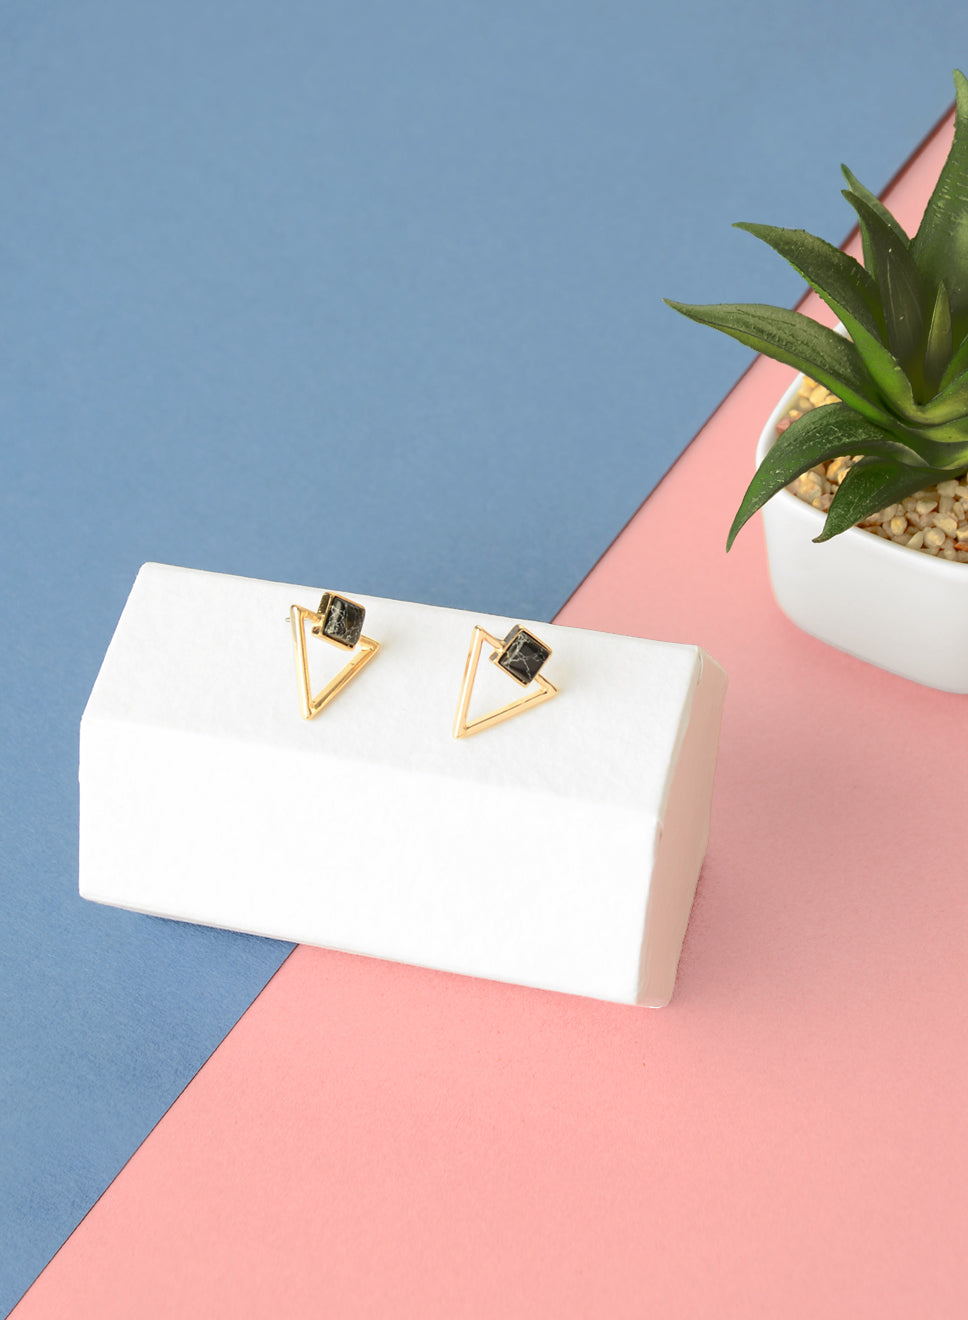 HAVEN Triangle Marble Earrings (Black) at $ 19.90 only sold at And Well Dressed Online Fashion Store Singapore